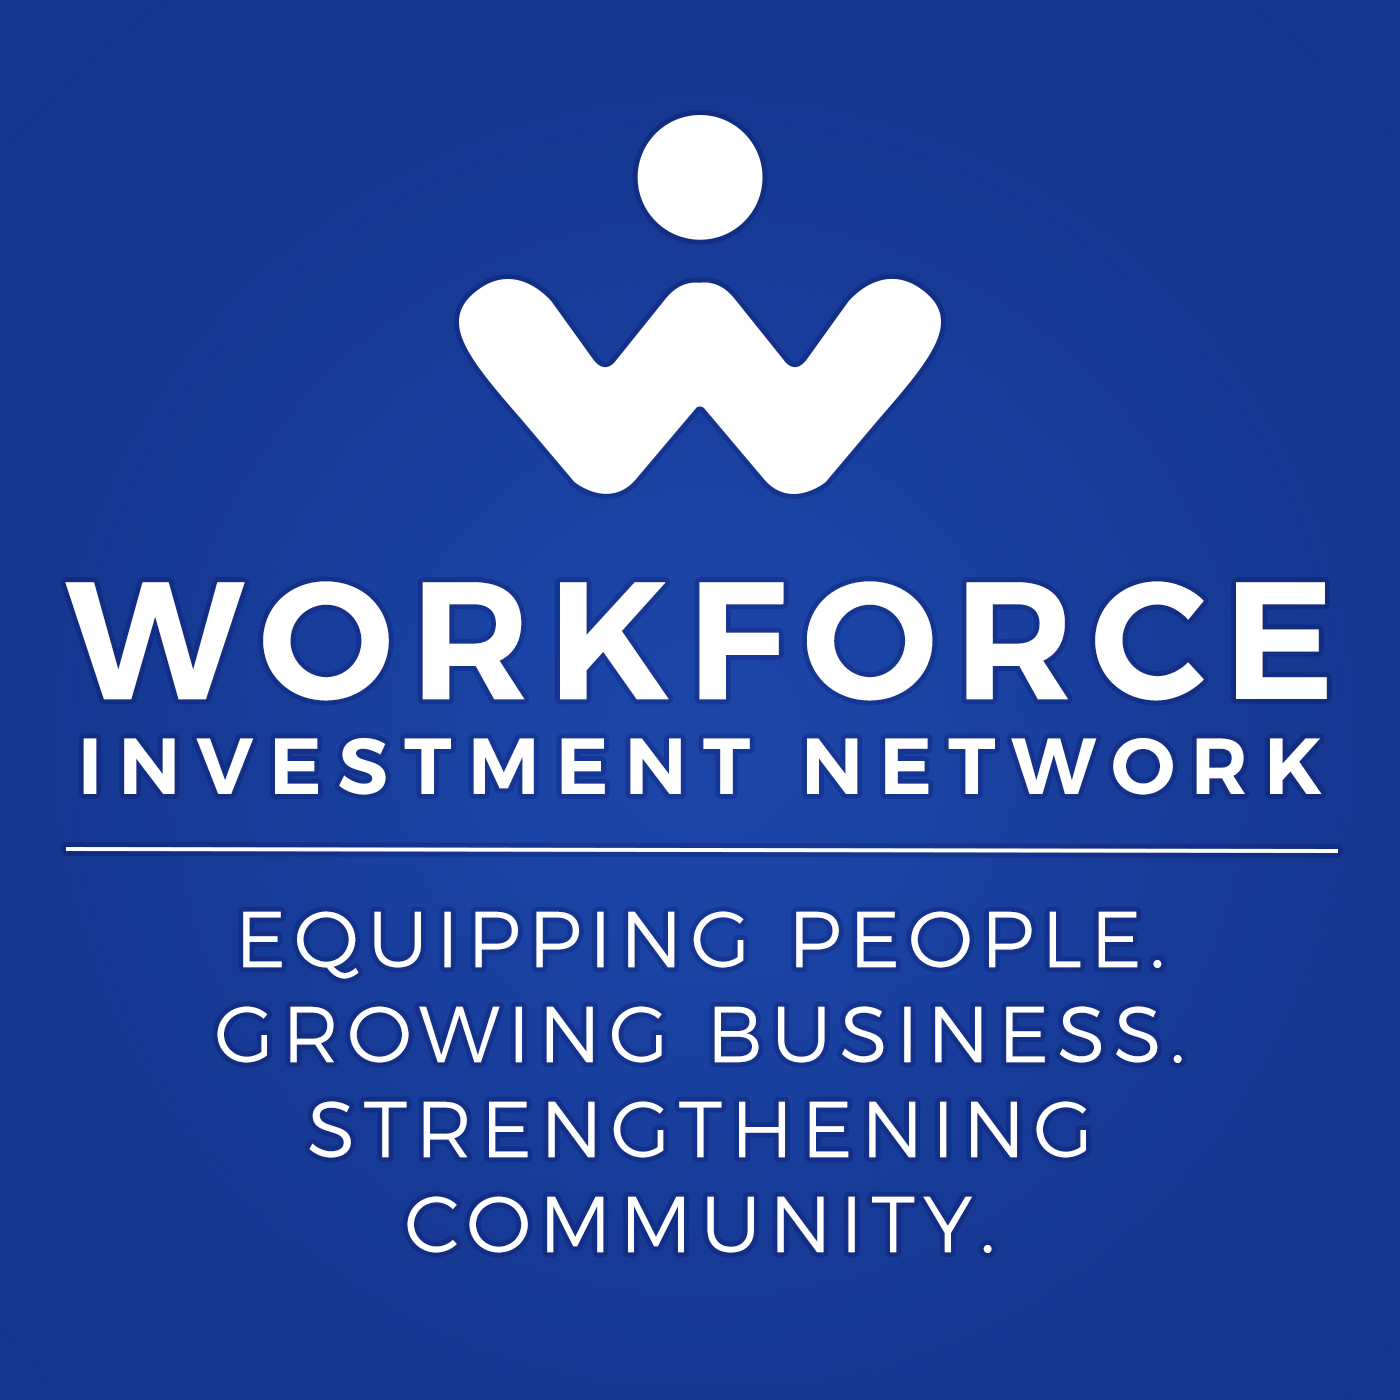 Workforce Investment Network